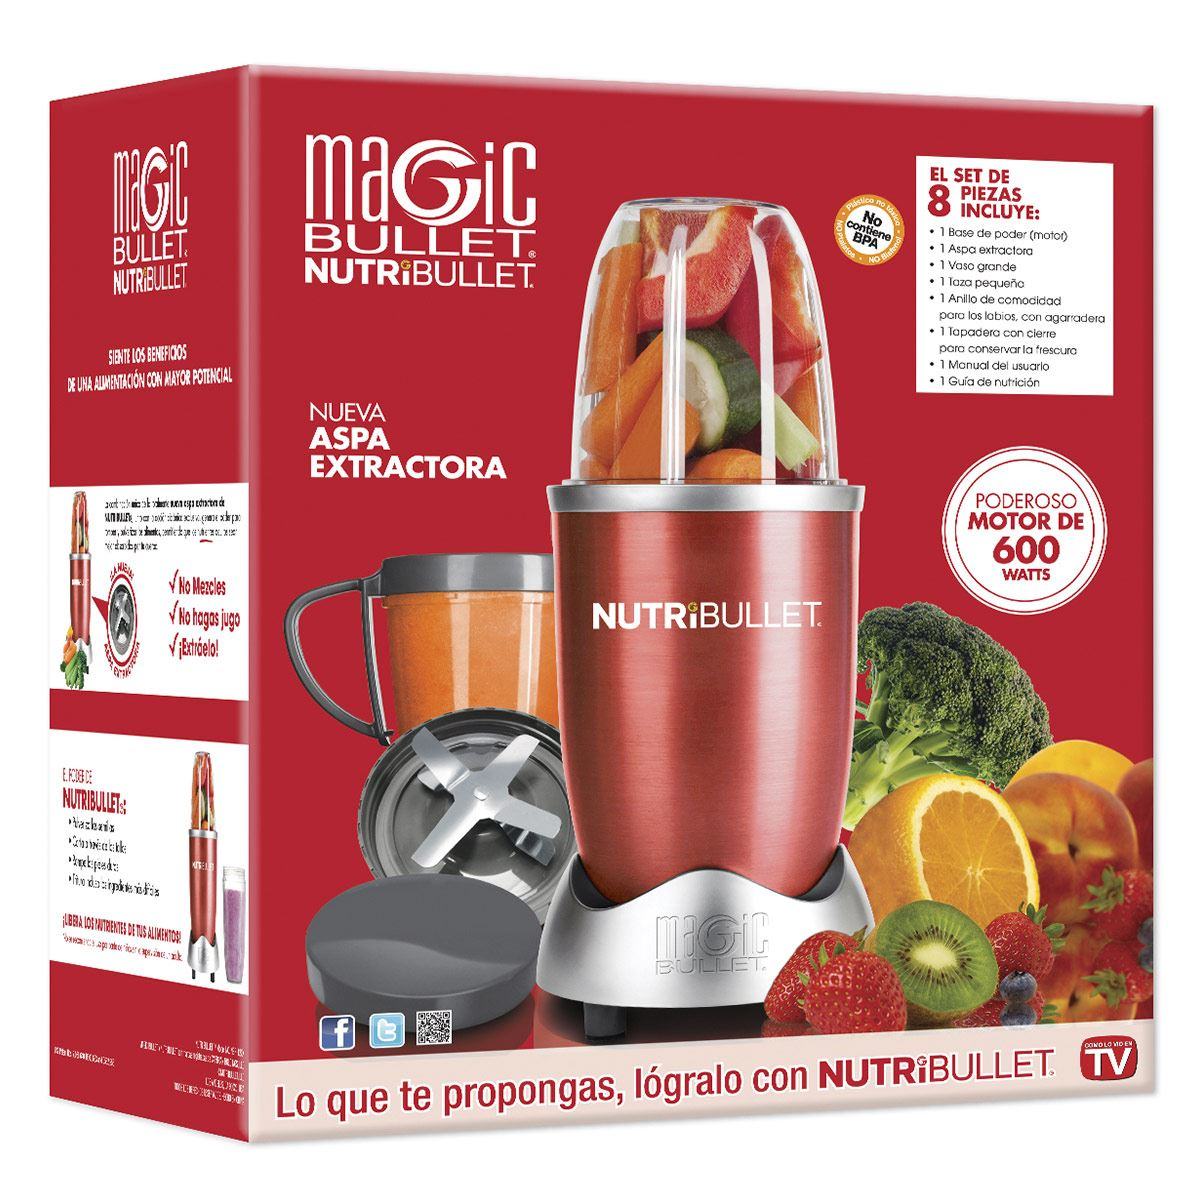 Extractor NutriBullet Rojo Magic Bullet